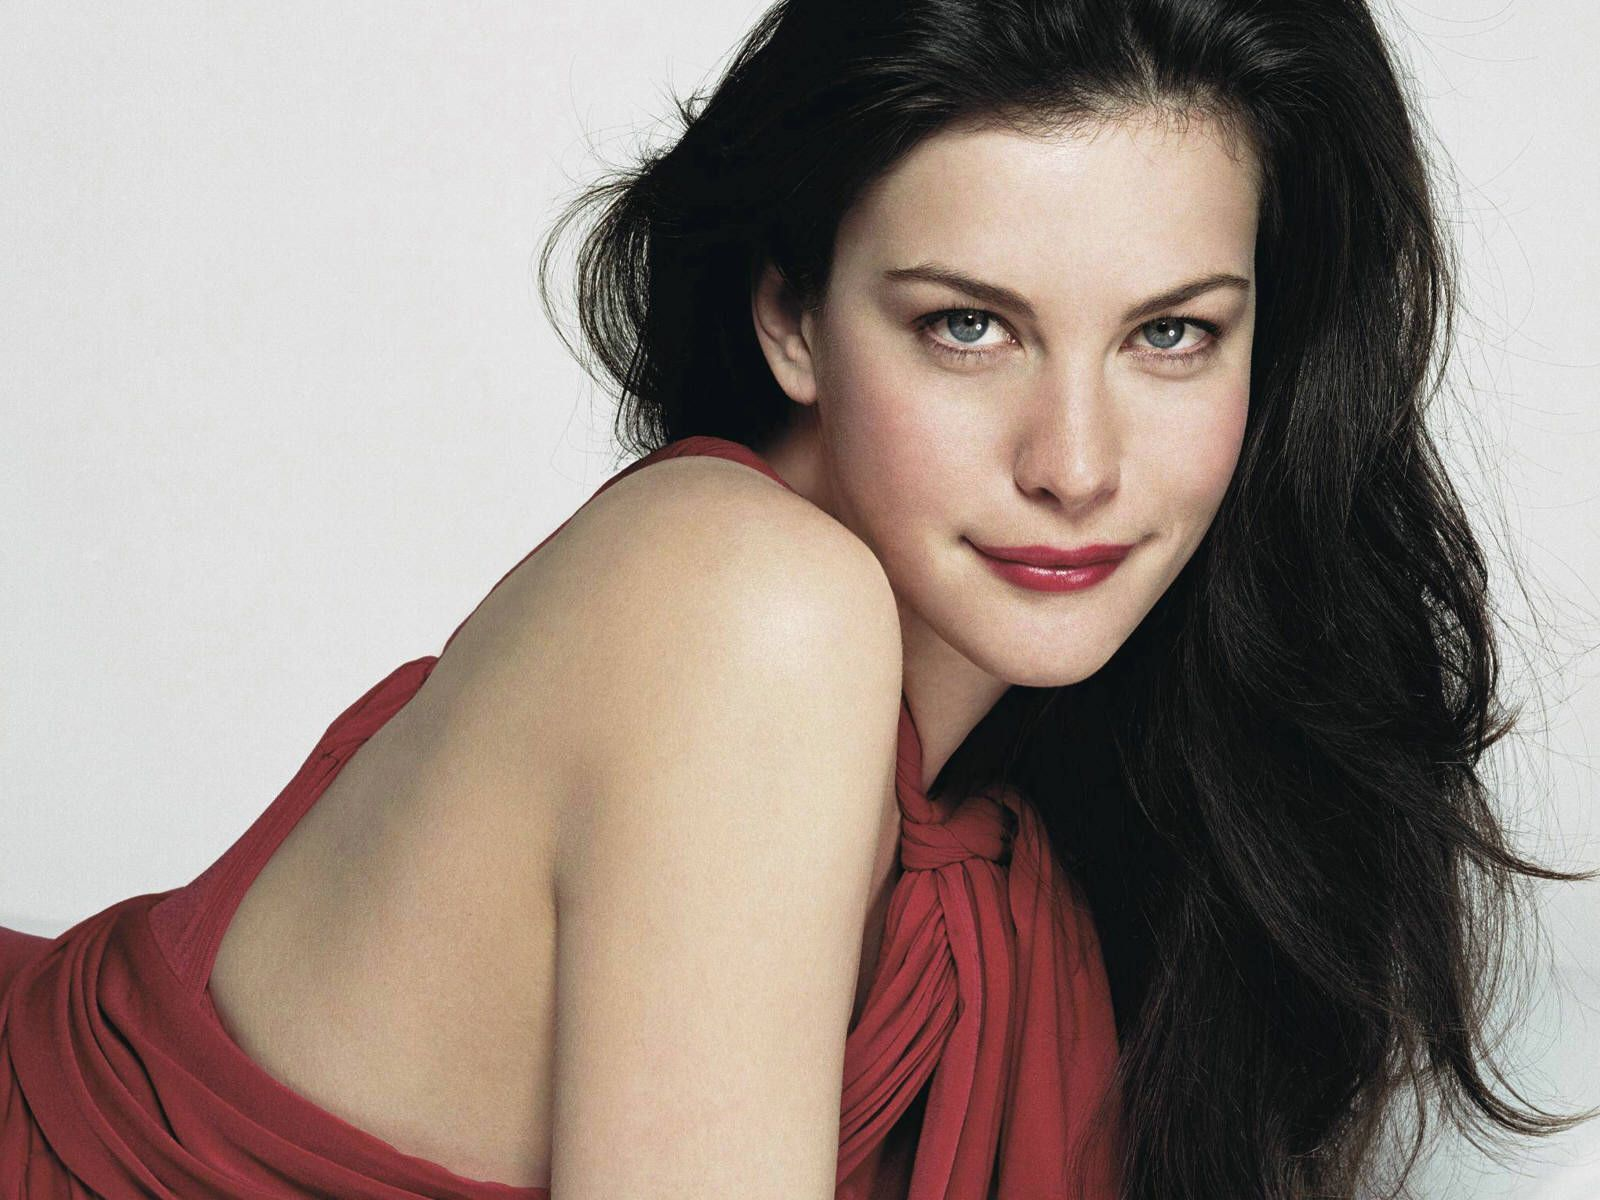 17 Best images about Liv Tyler on Pinterest | Liv tyler, Actresses ...